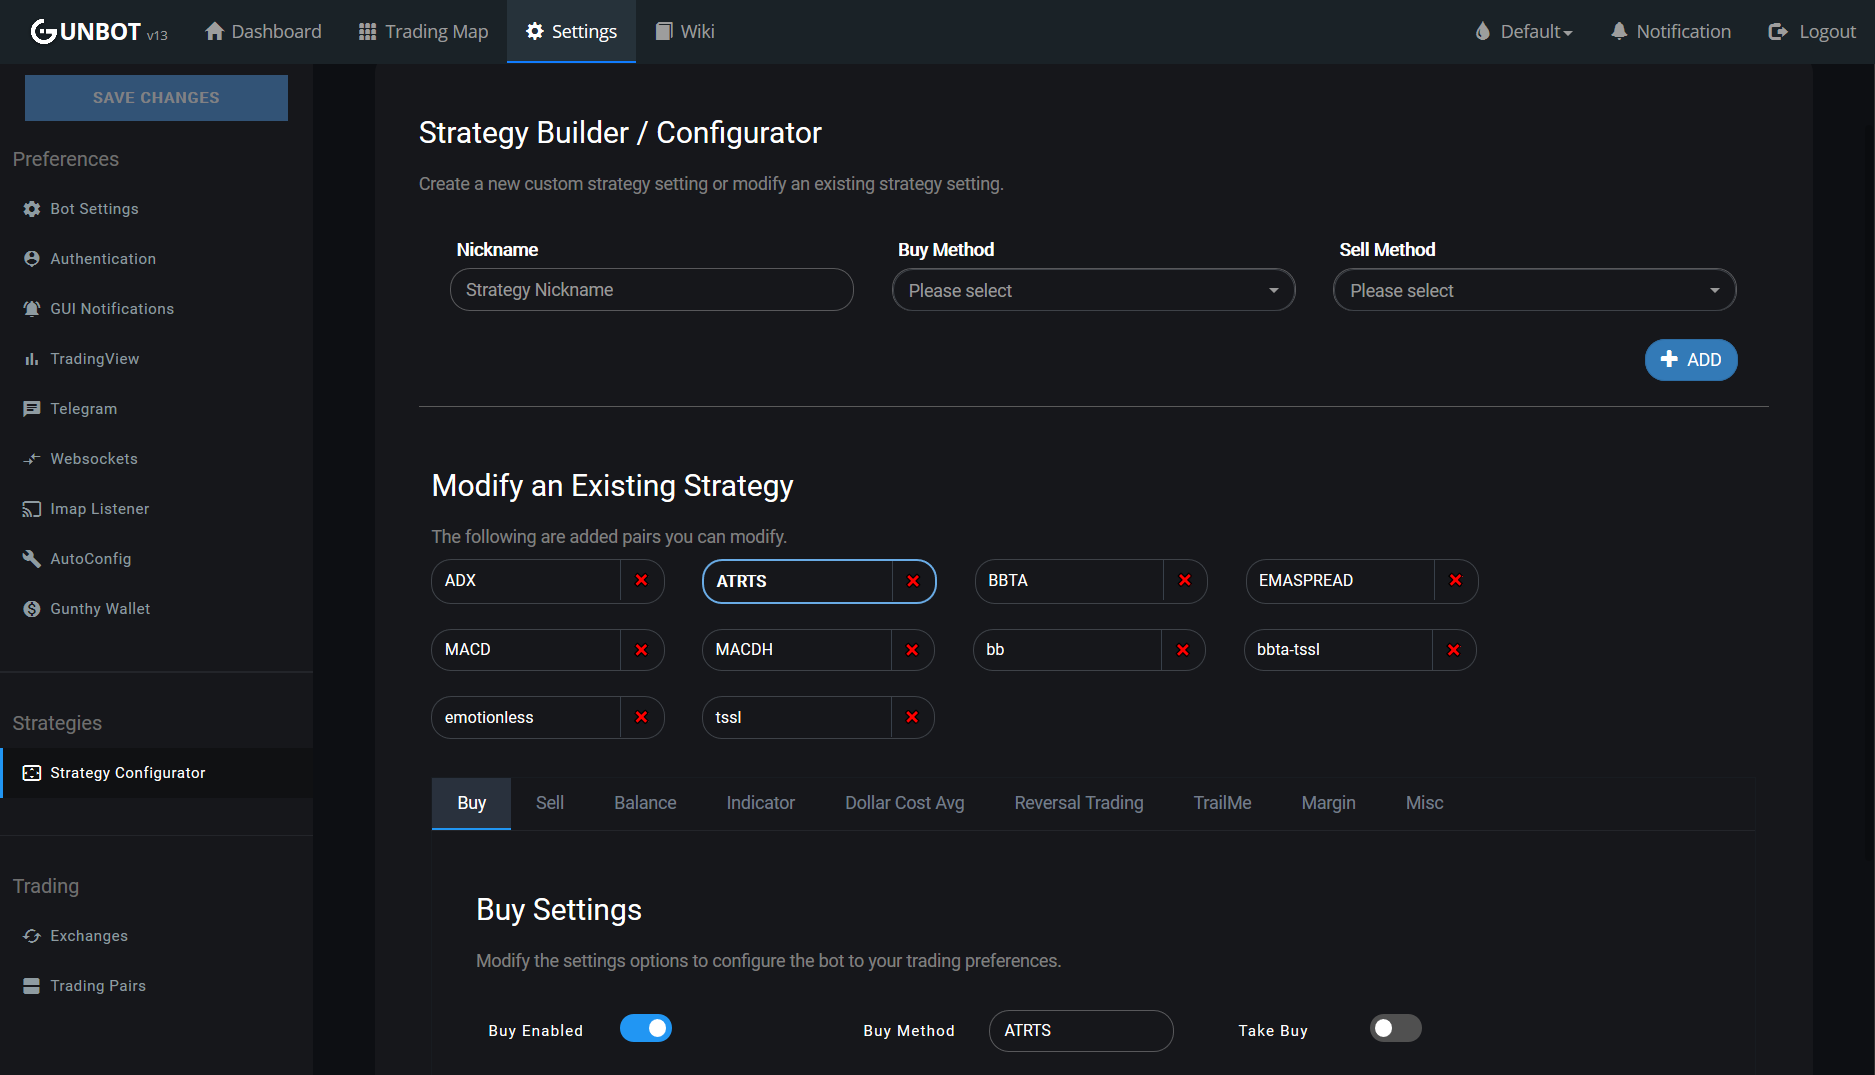 Gunbot strategy configurator for automated trading